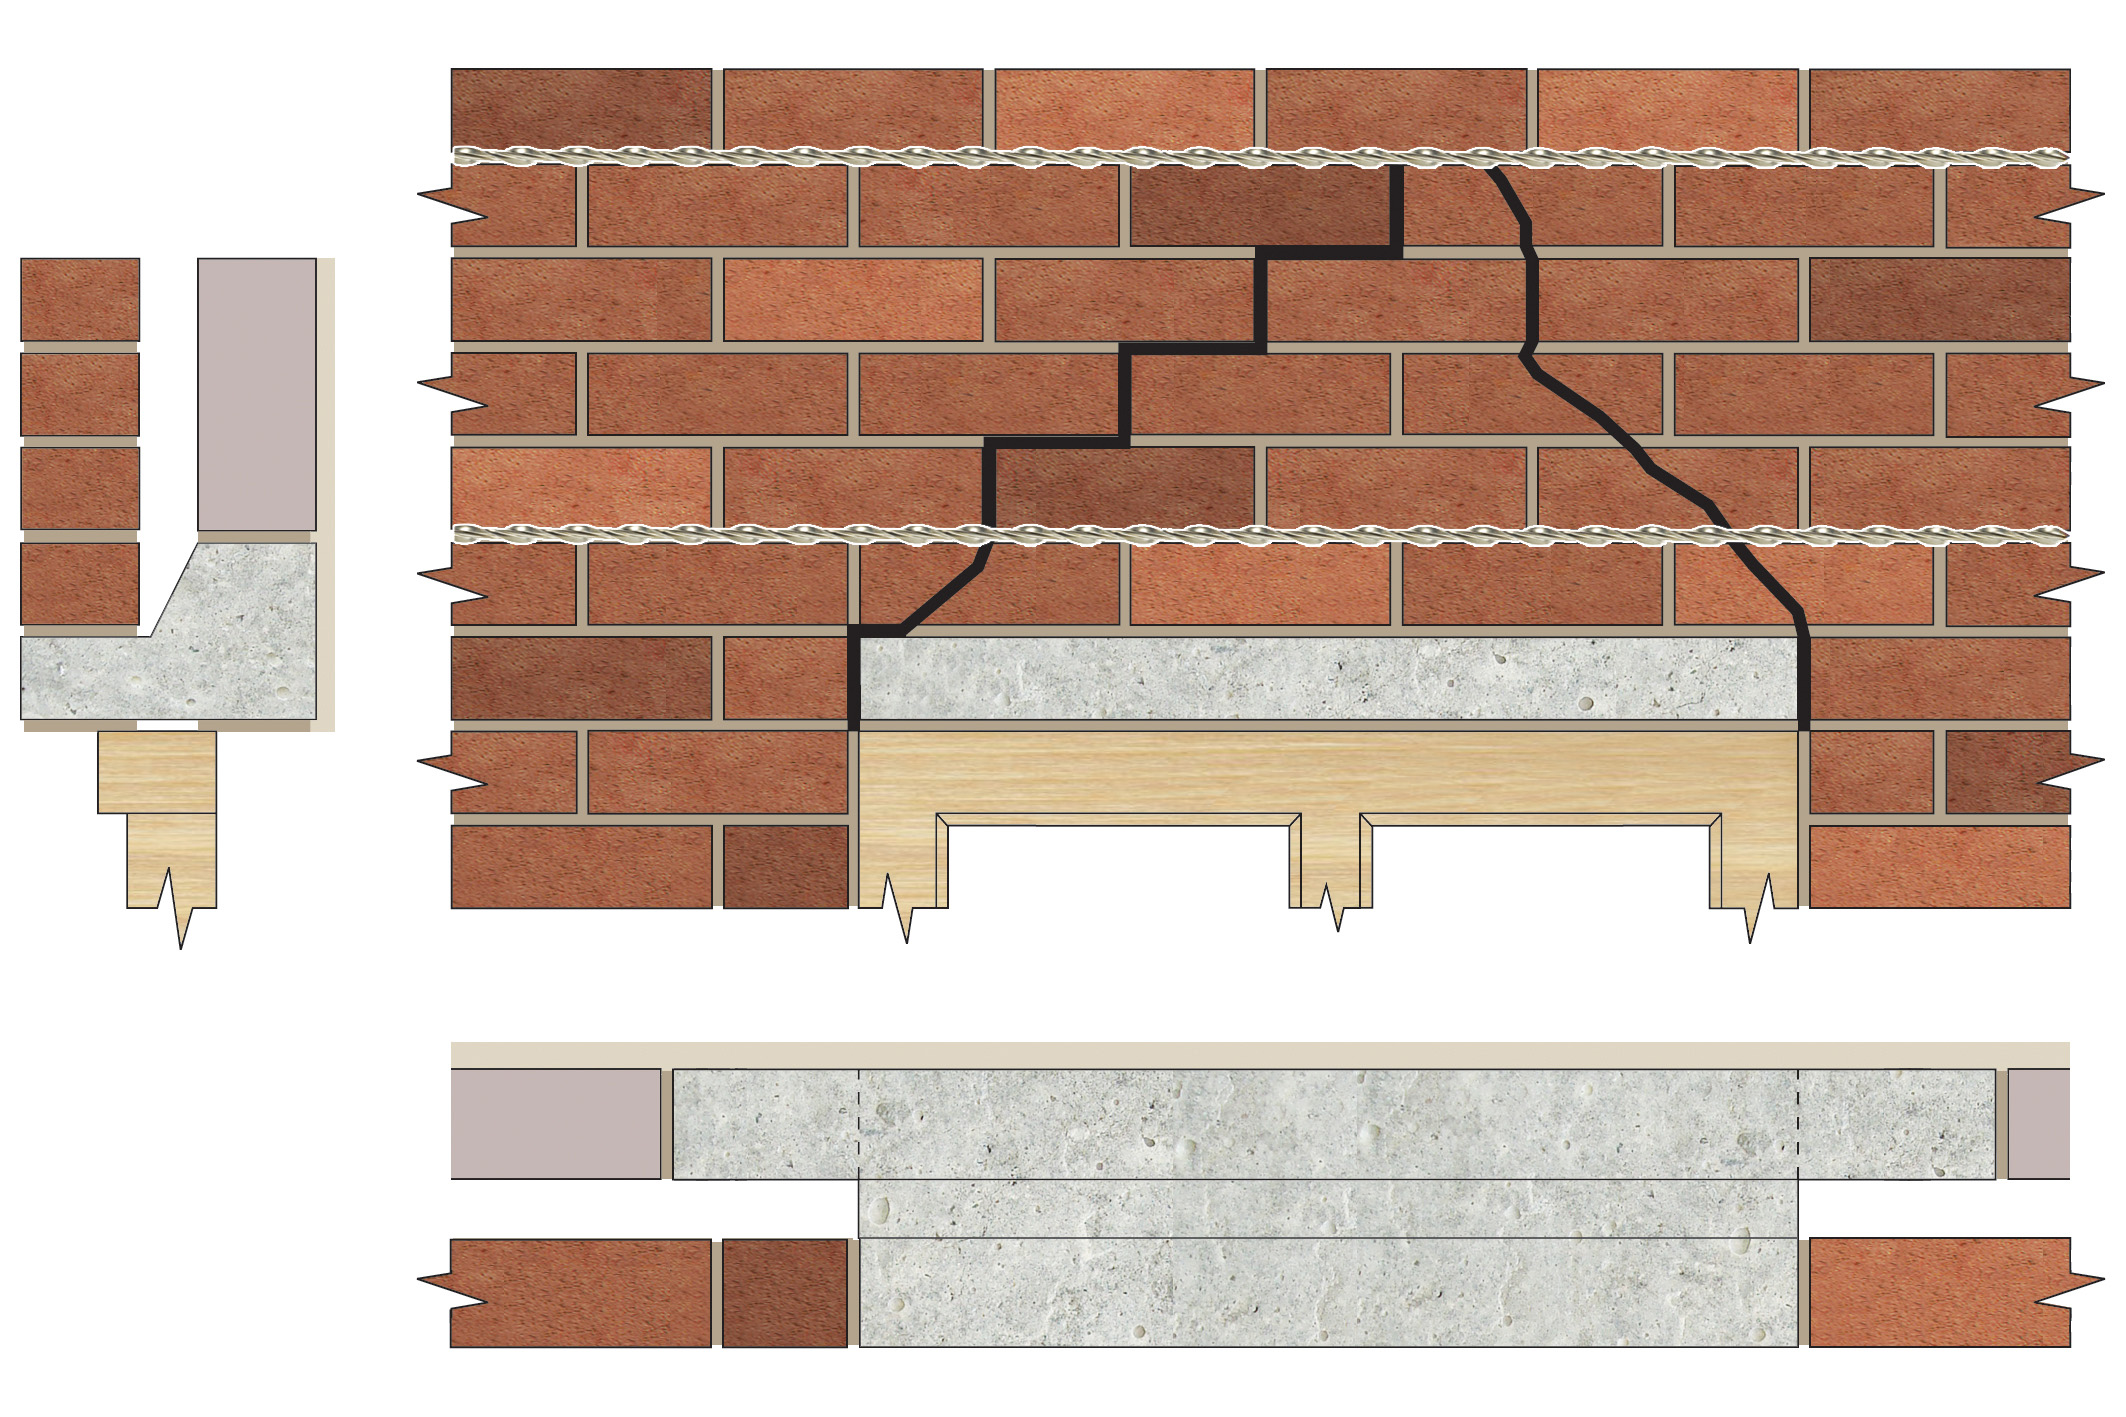 It Is Also Extremely Disruptive For The Residents As It Involves Having  Mechanical Props Both Internally And Externally To Support The Masonry  During Lintel ...